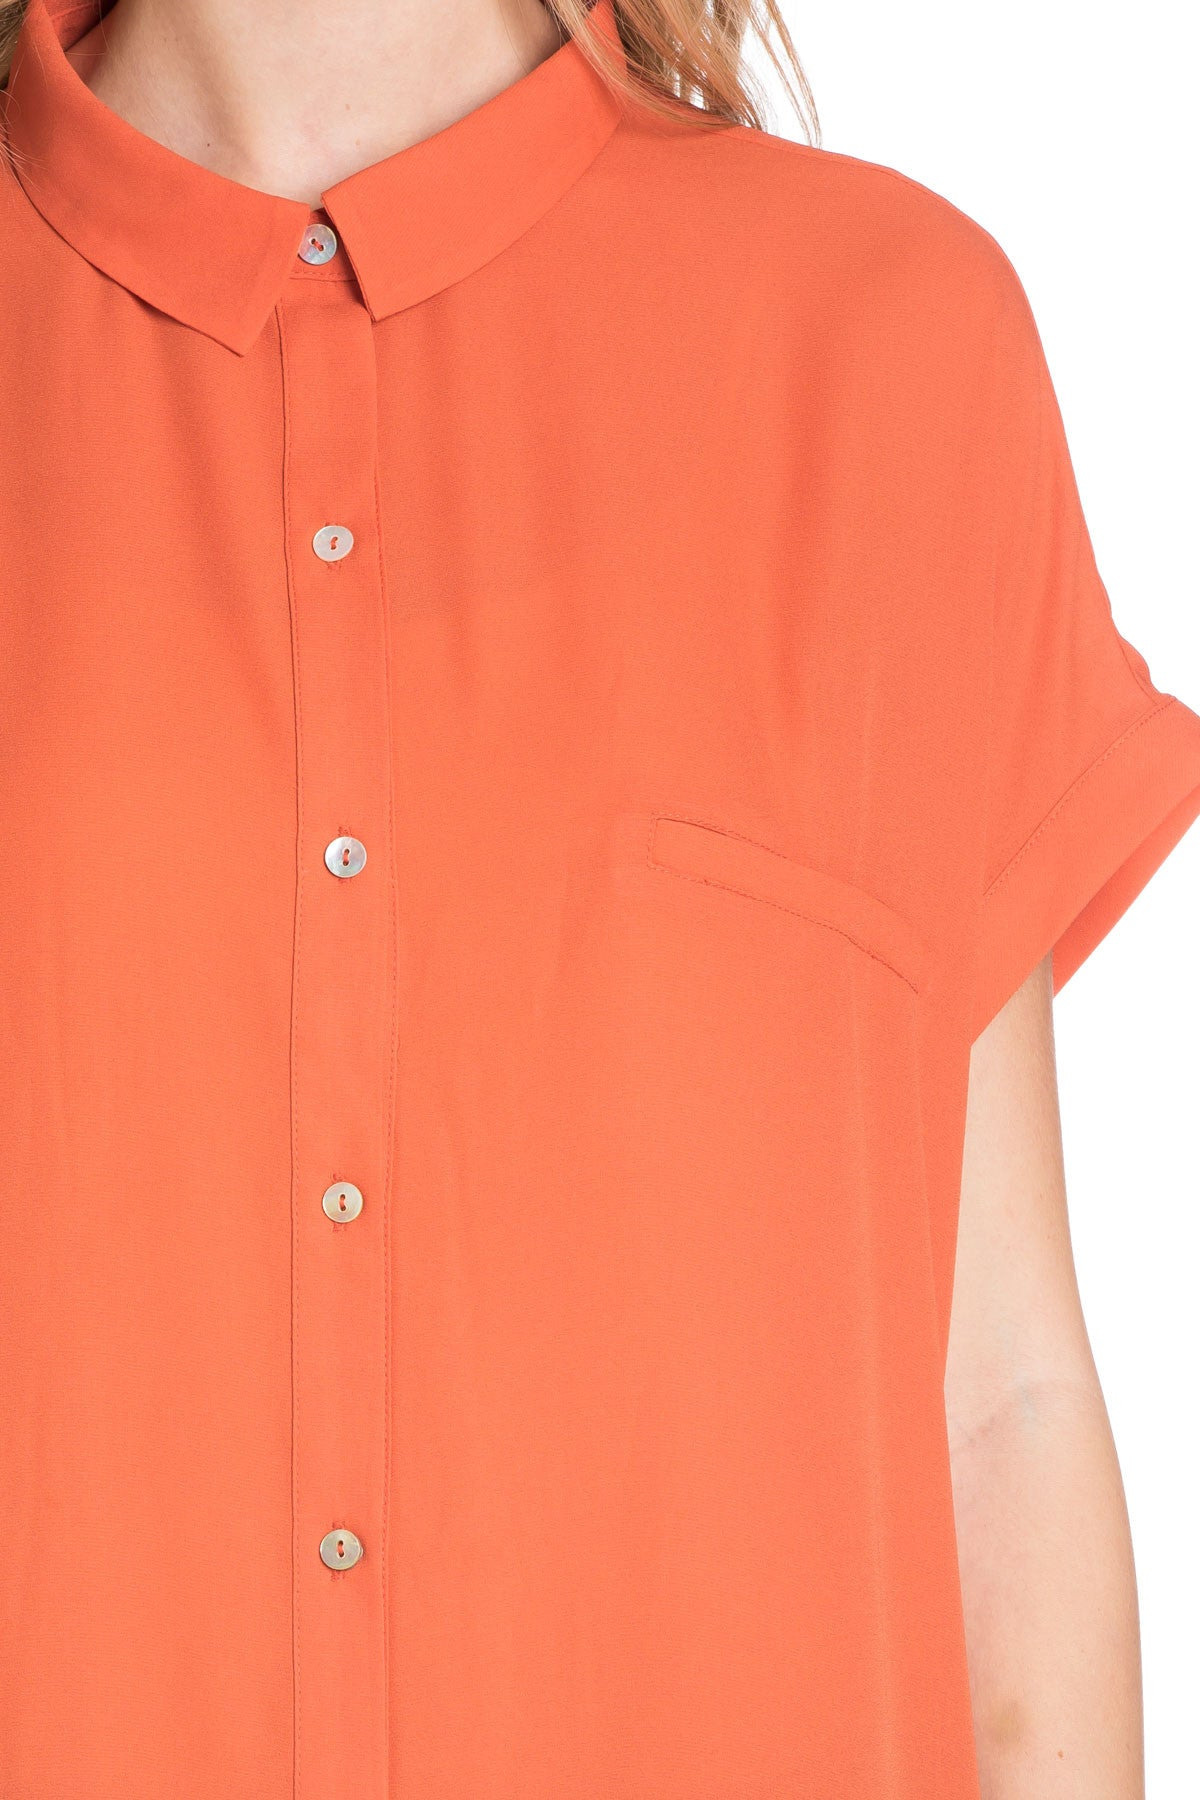 Short Sleeve Longline Button Down Chiffon Top in Sun Coral - Tops - My Yuccie - 13